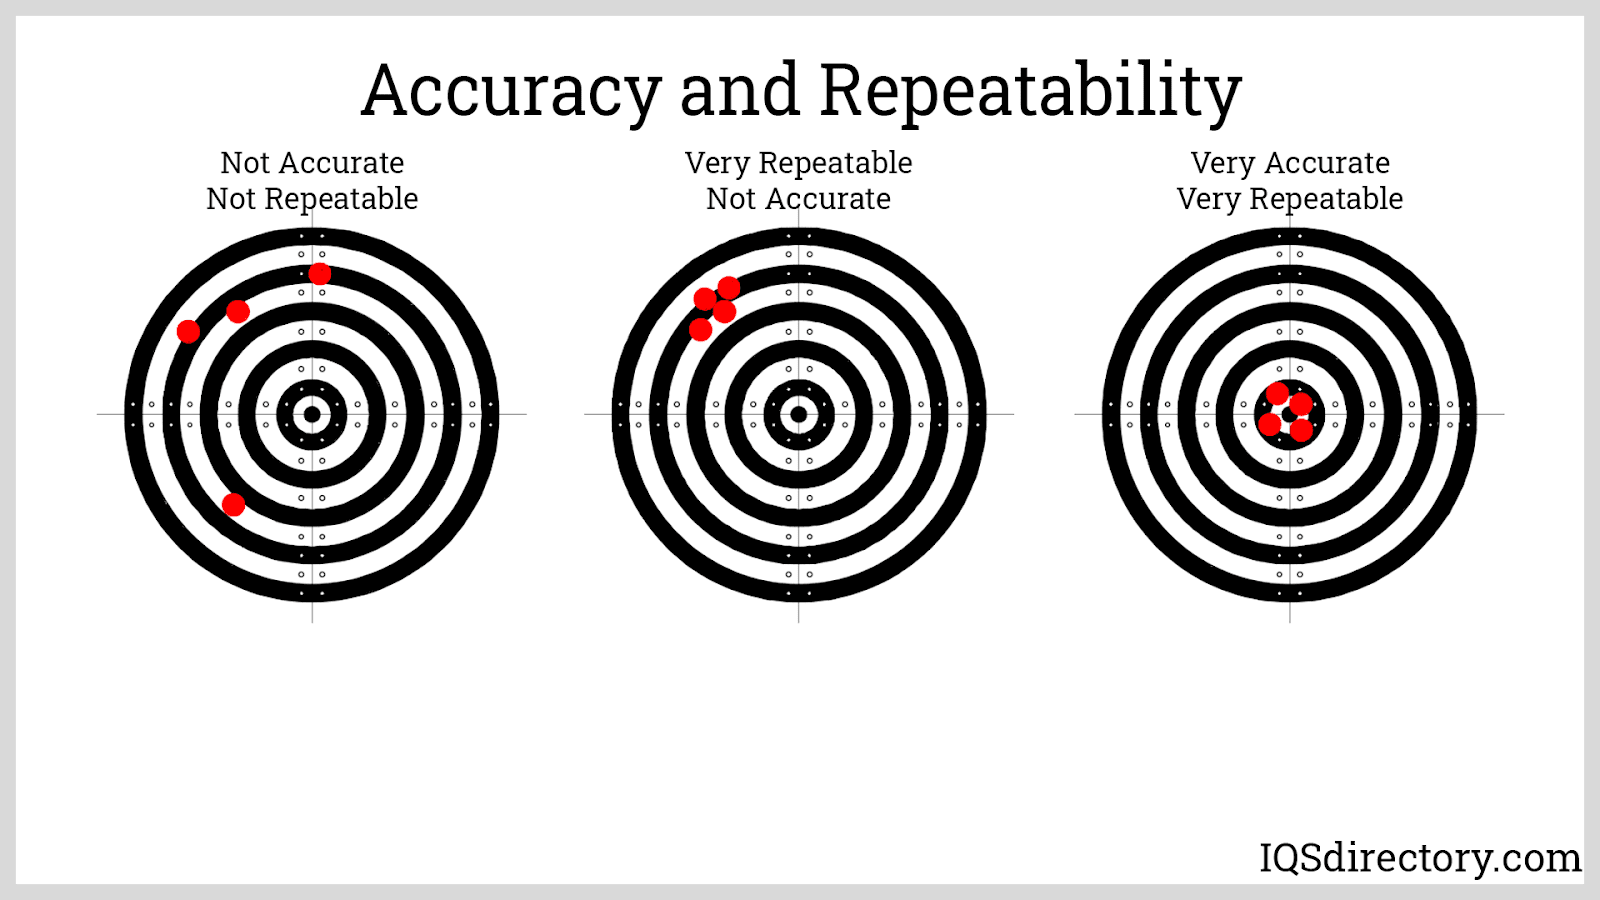 Accuracy and Repeatability